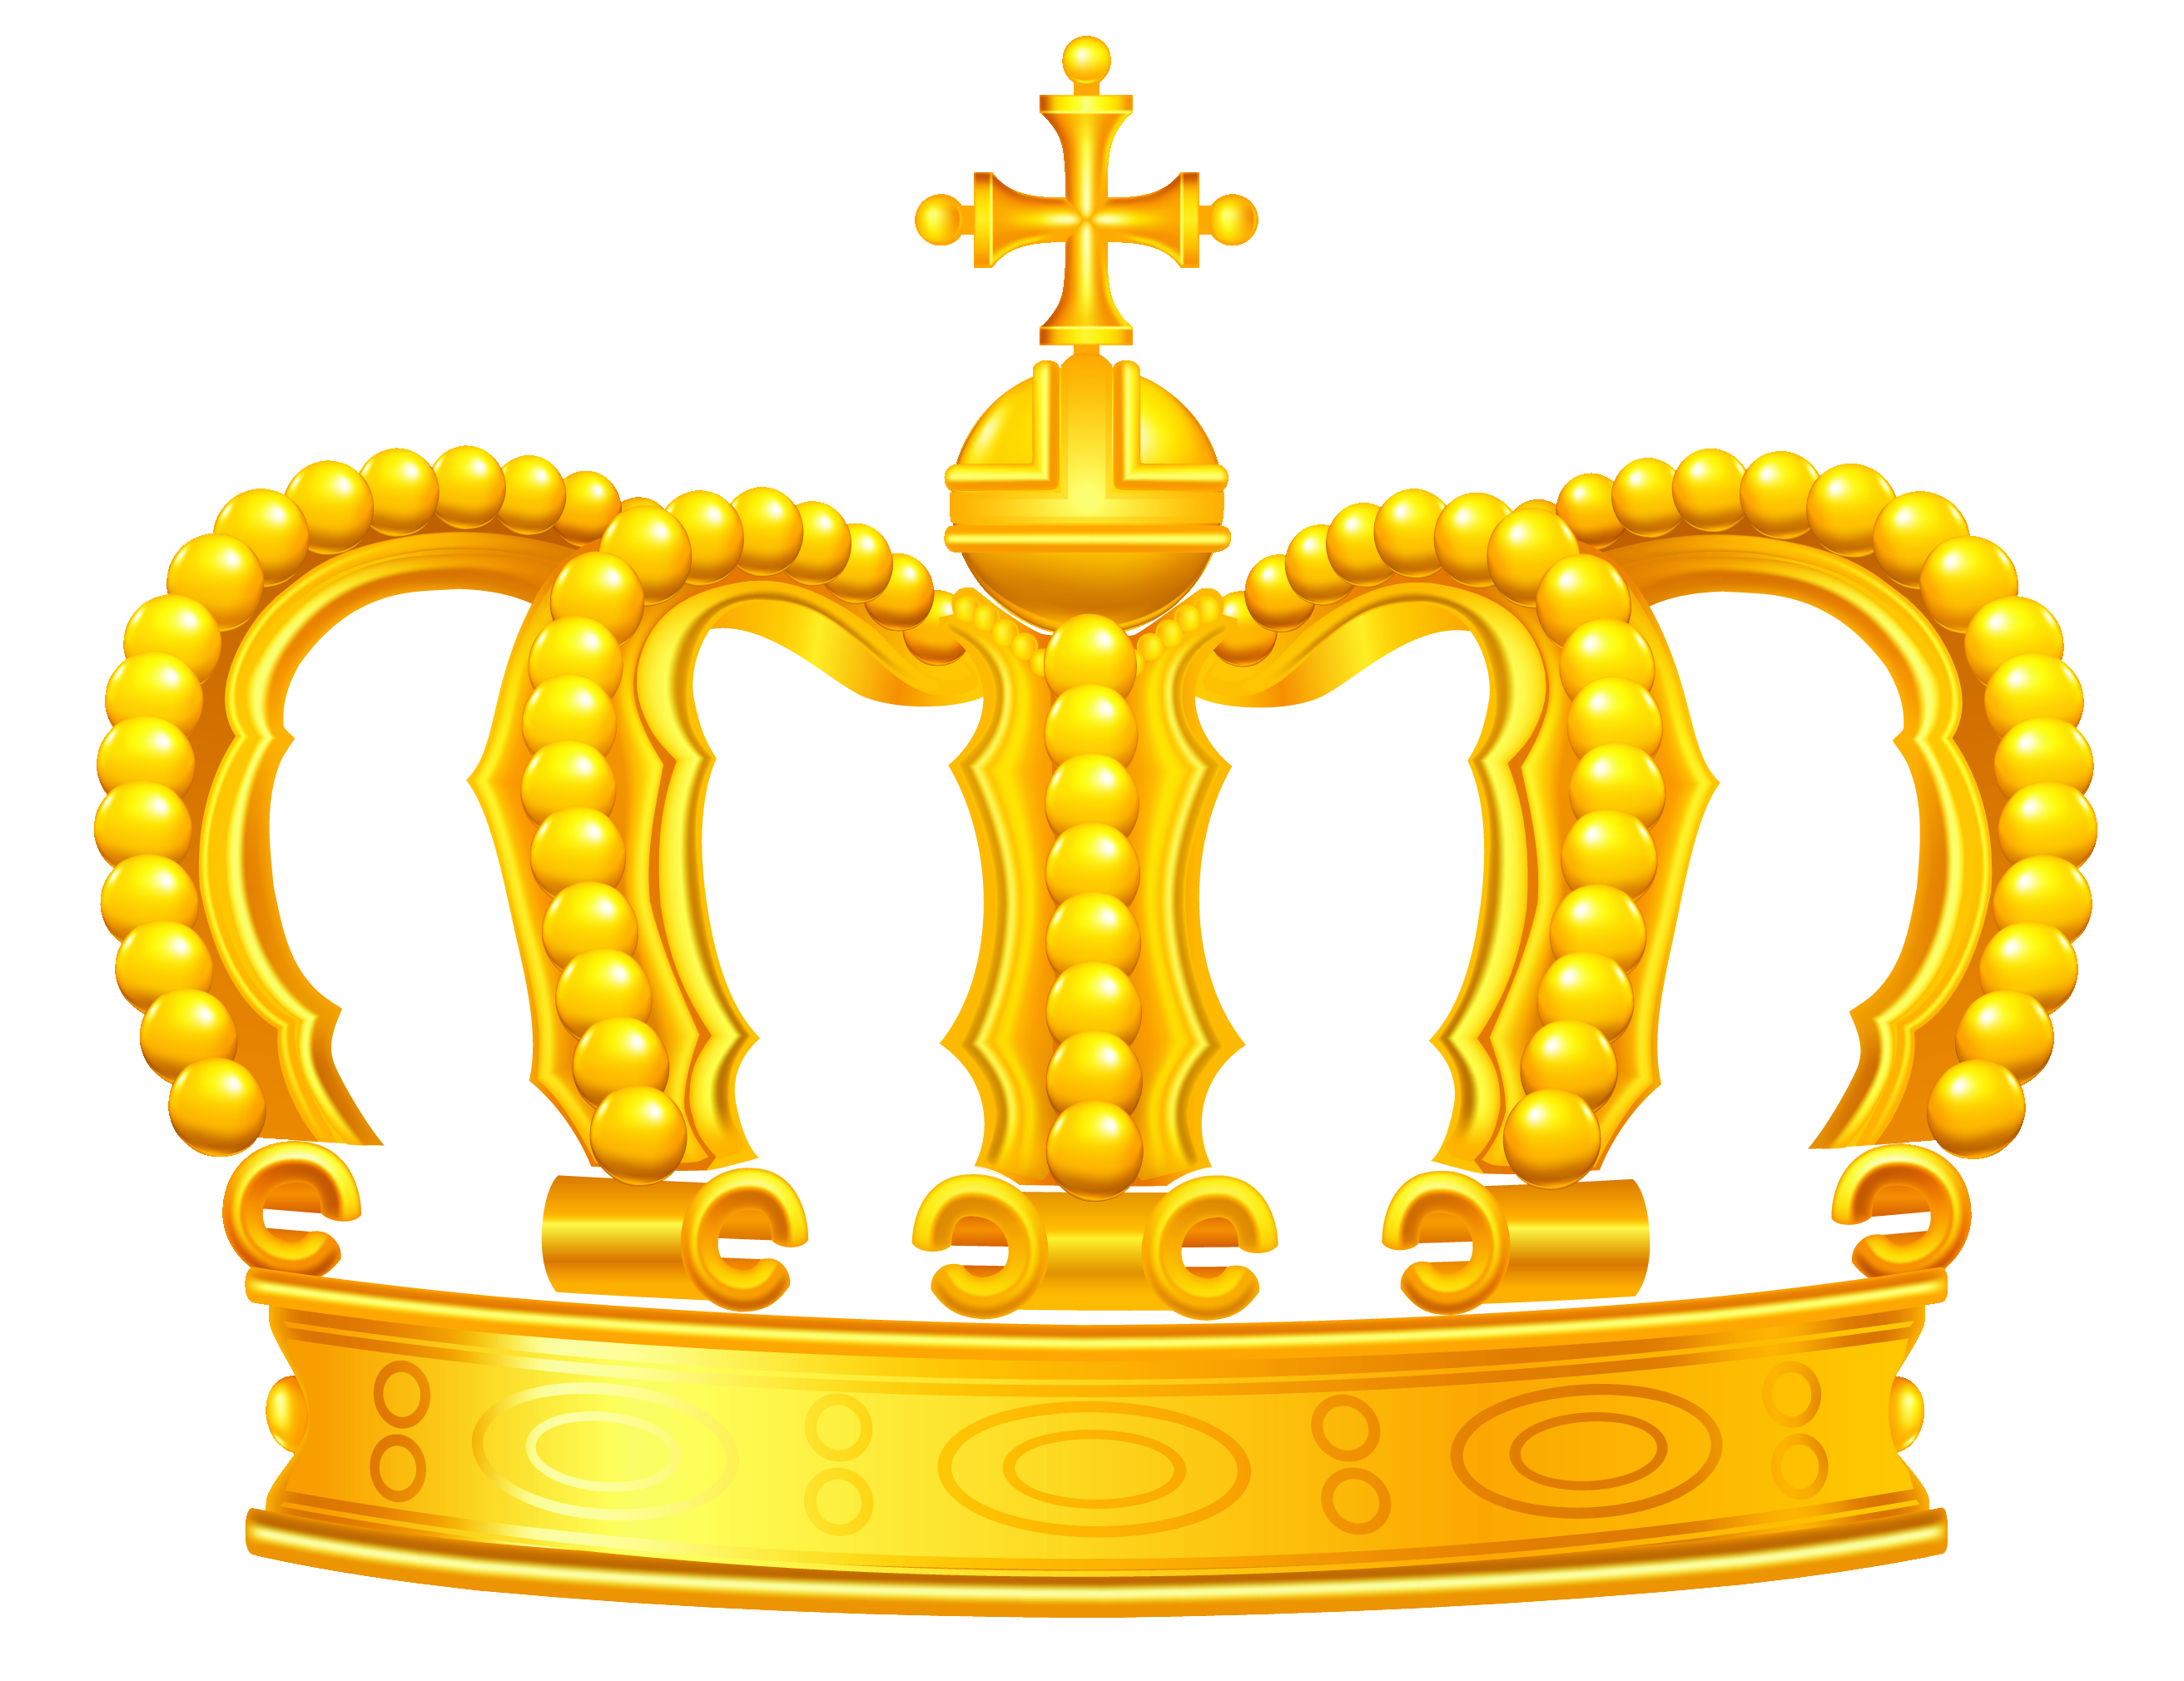 Crown gold diamonds hd clipart clipart royalty free Gold Crown PNG Clipart clipart royalty free